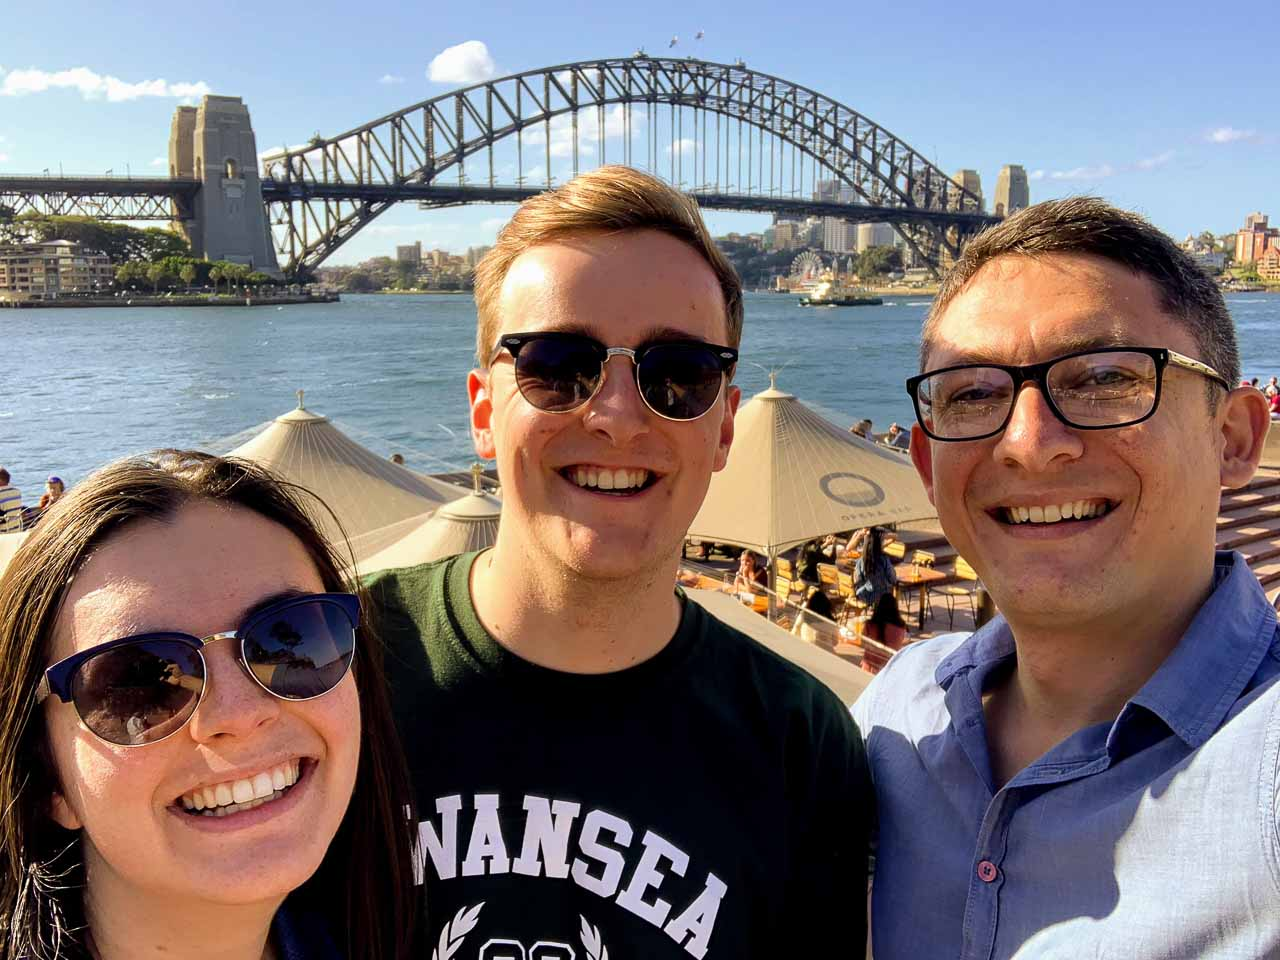 Tour guide, man & woman overlooking restaurant, Sydney Harbour & Harbour Bridge background